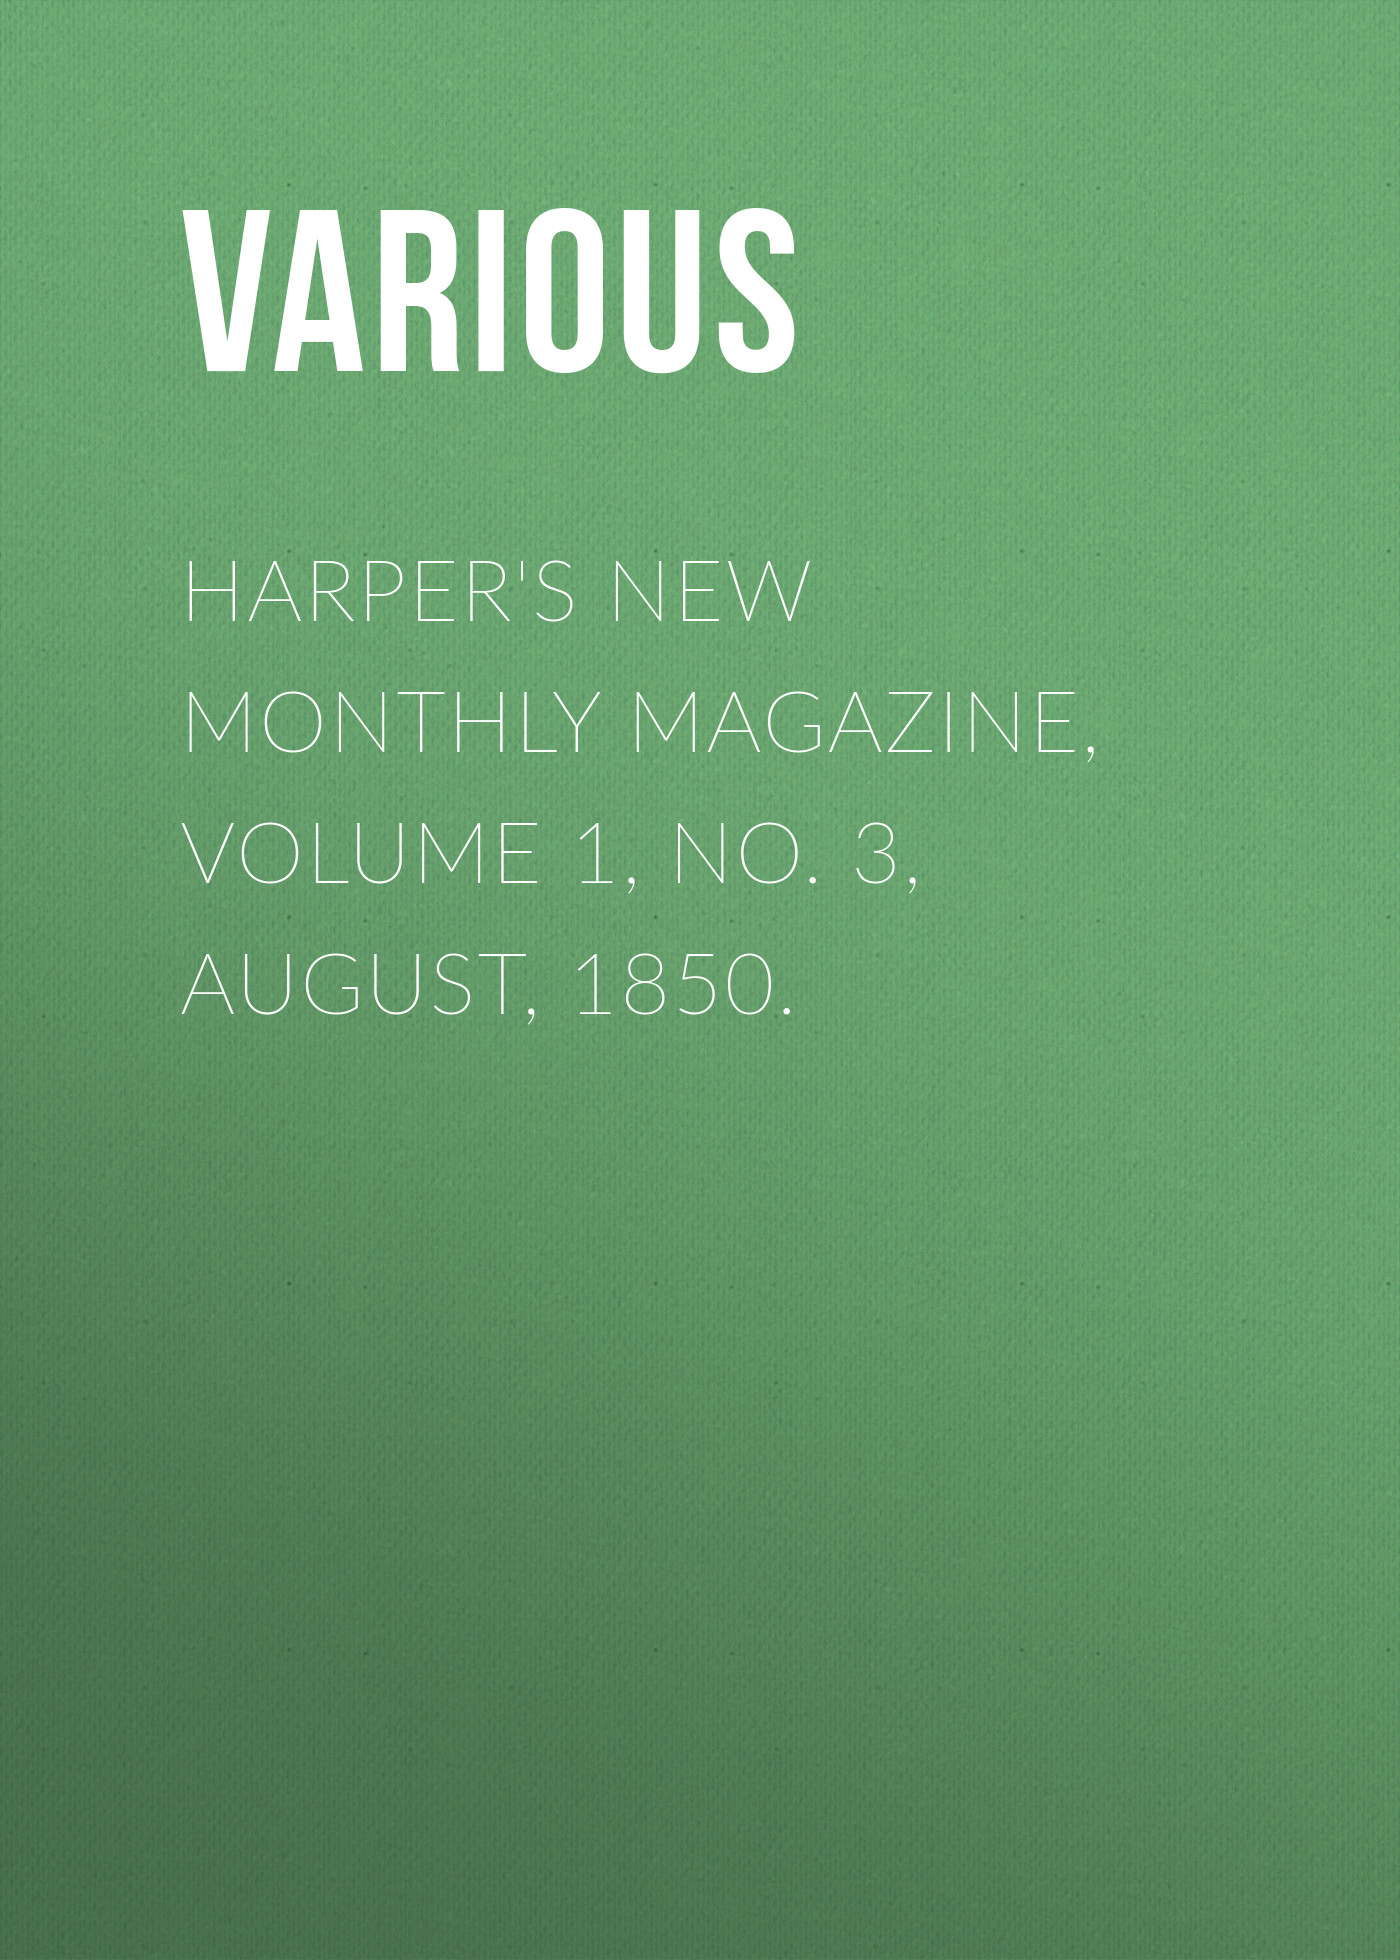 Various Harper's New Monthly Magazine, Volume 1, No. 3, August, 1850. беговая дорожка intenza 550te